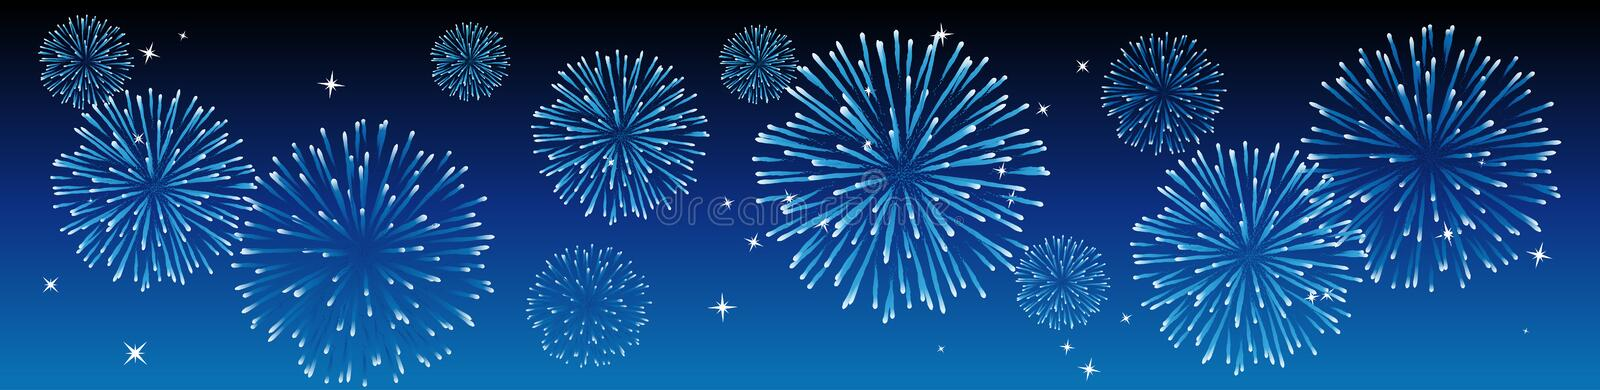 Vector fireworks stock illustration